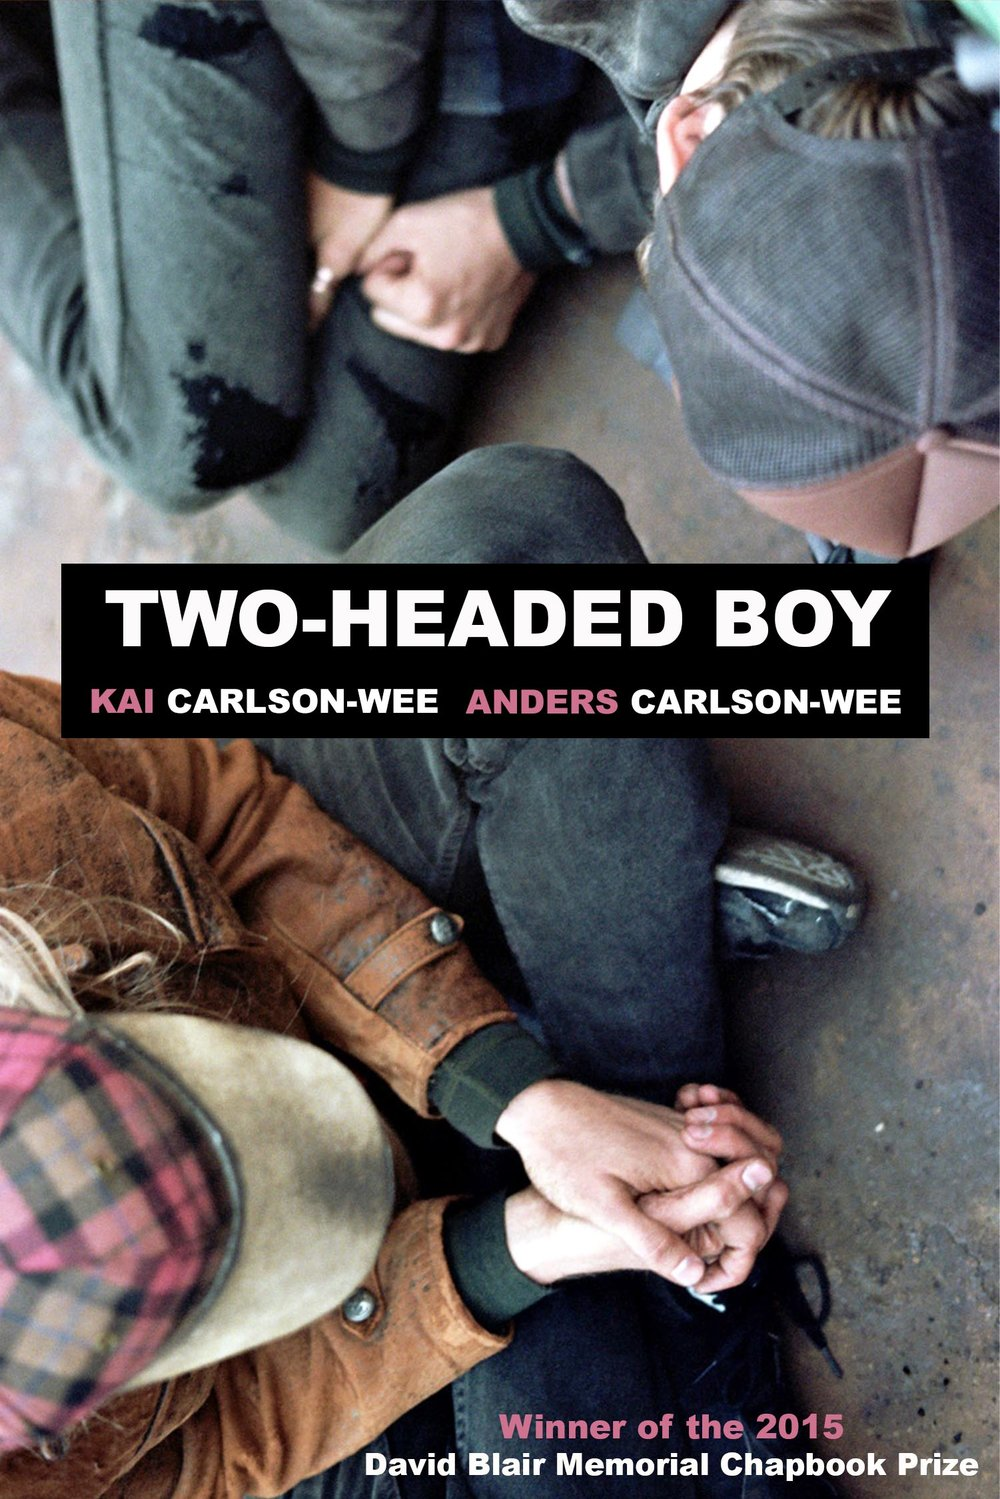 Two-Headed Boy__Cover.jpg